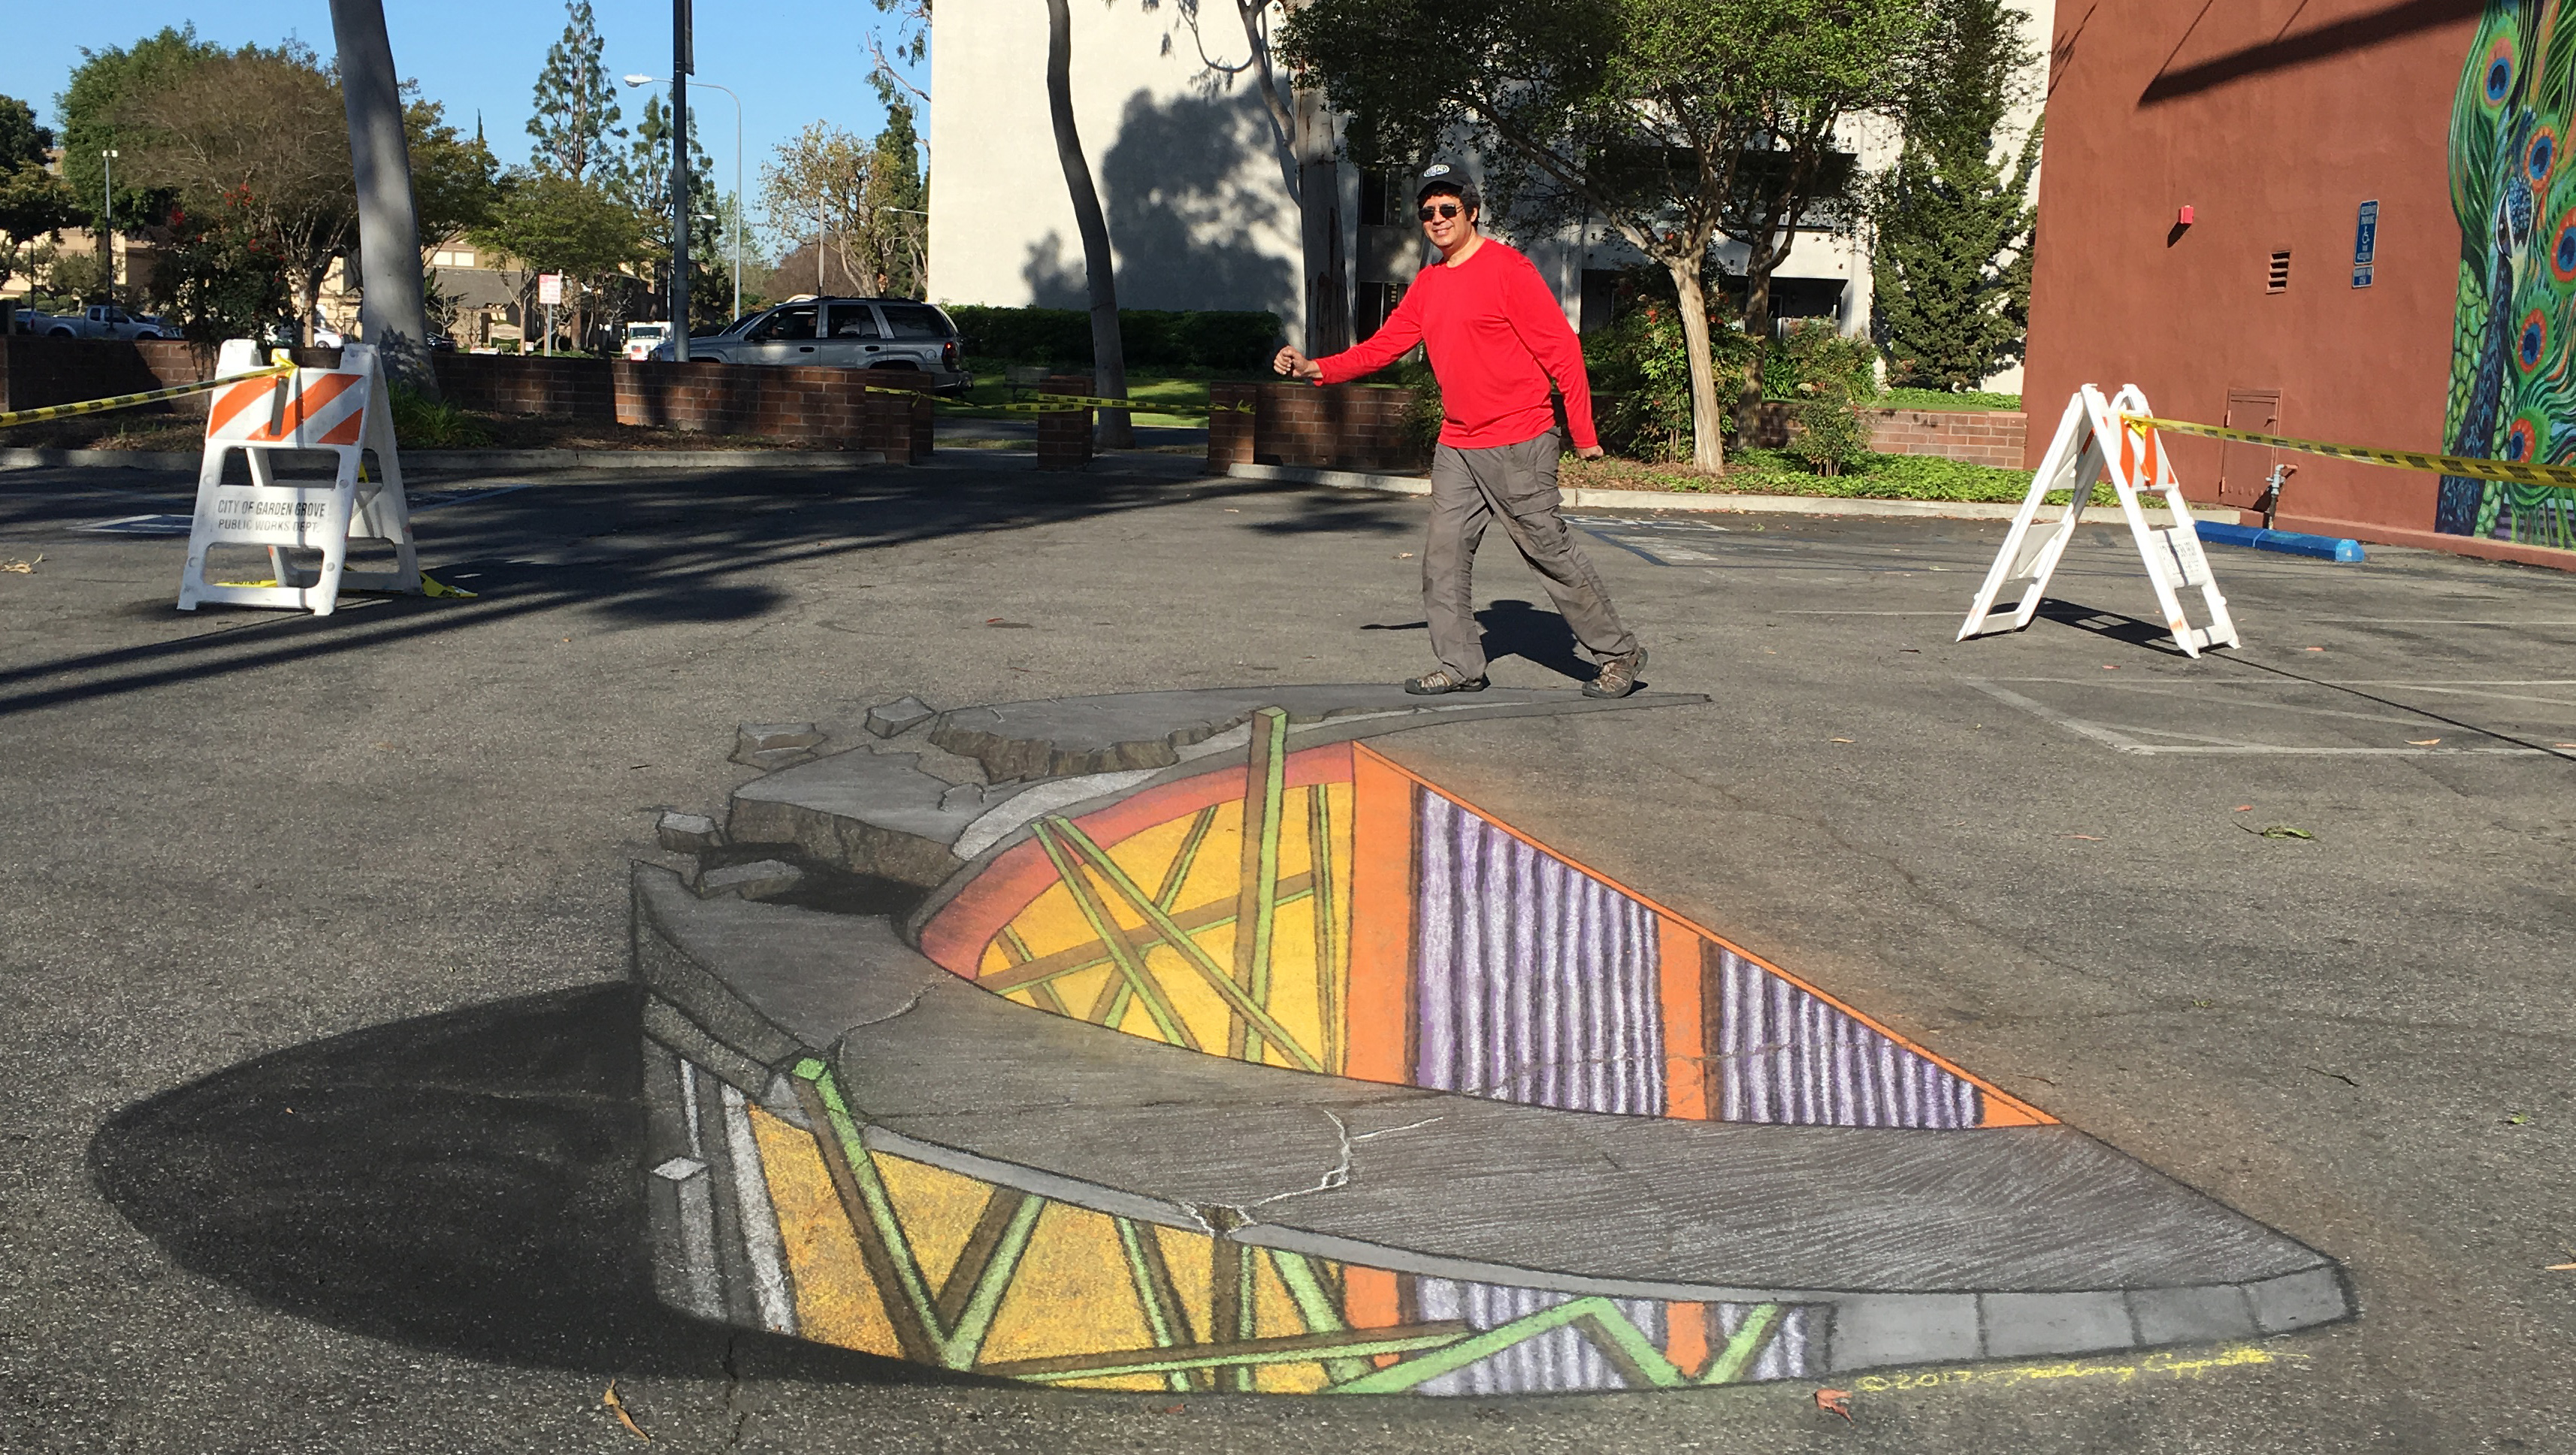 ACappetto 3D chalk portion of 4D AR project Garden Grove_8484